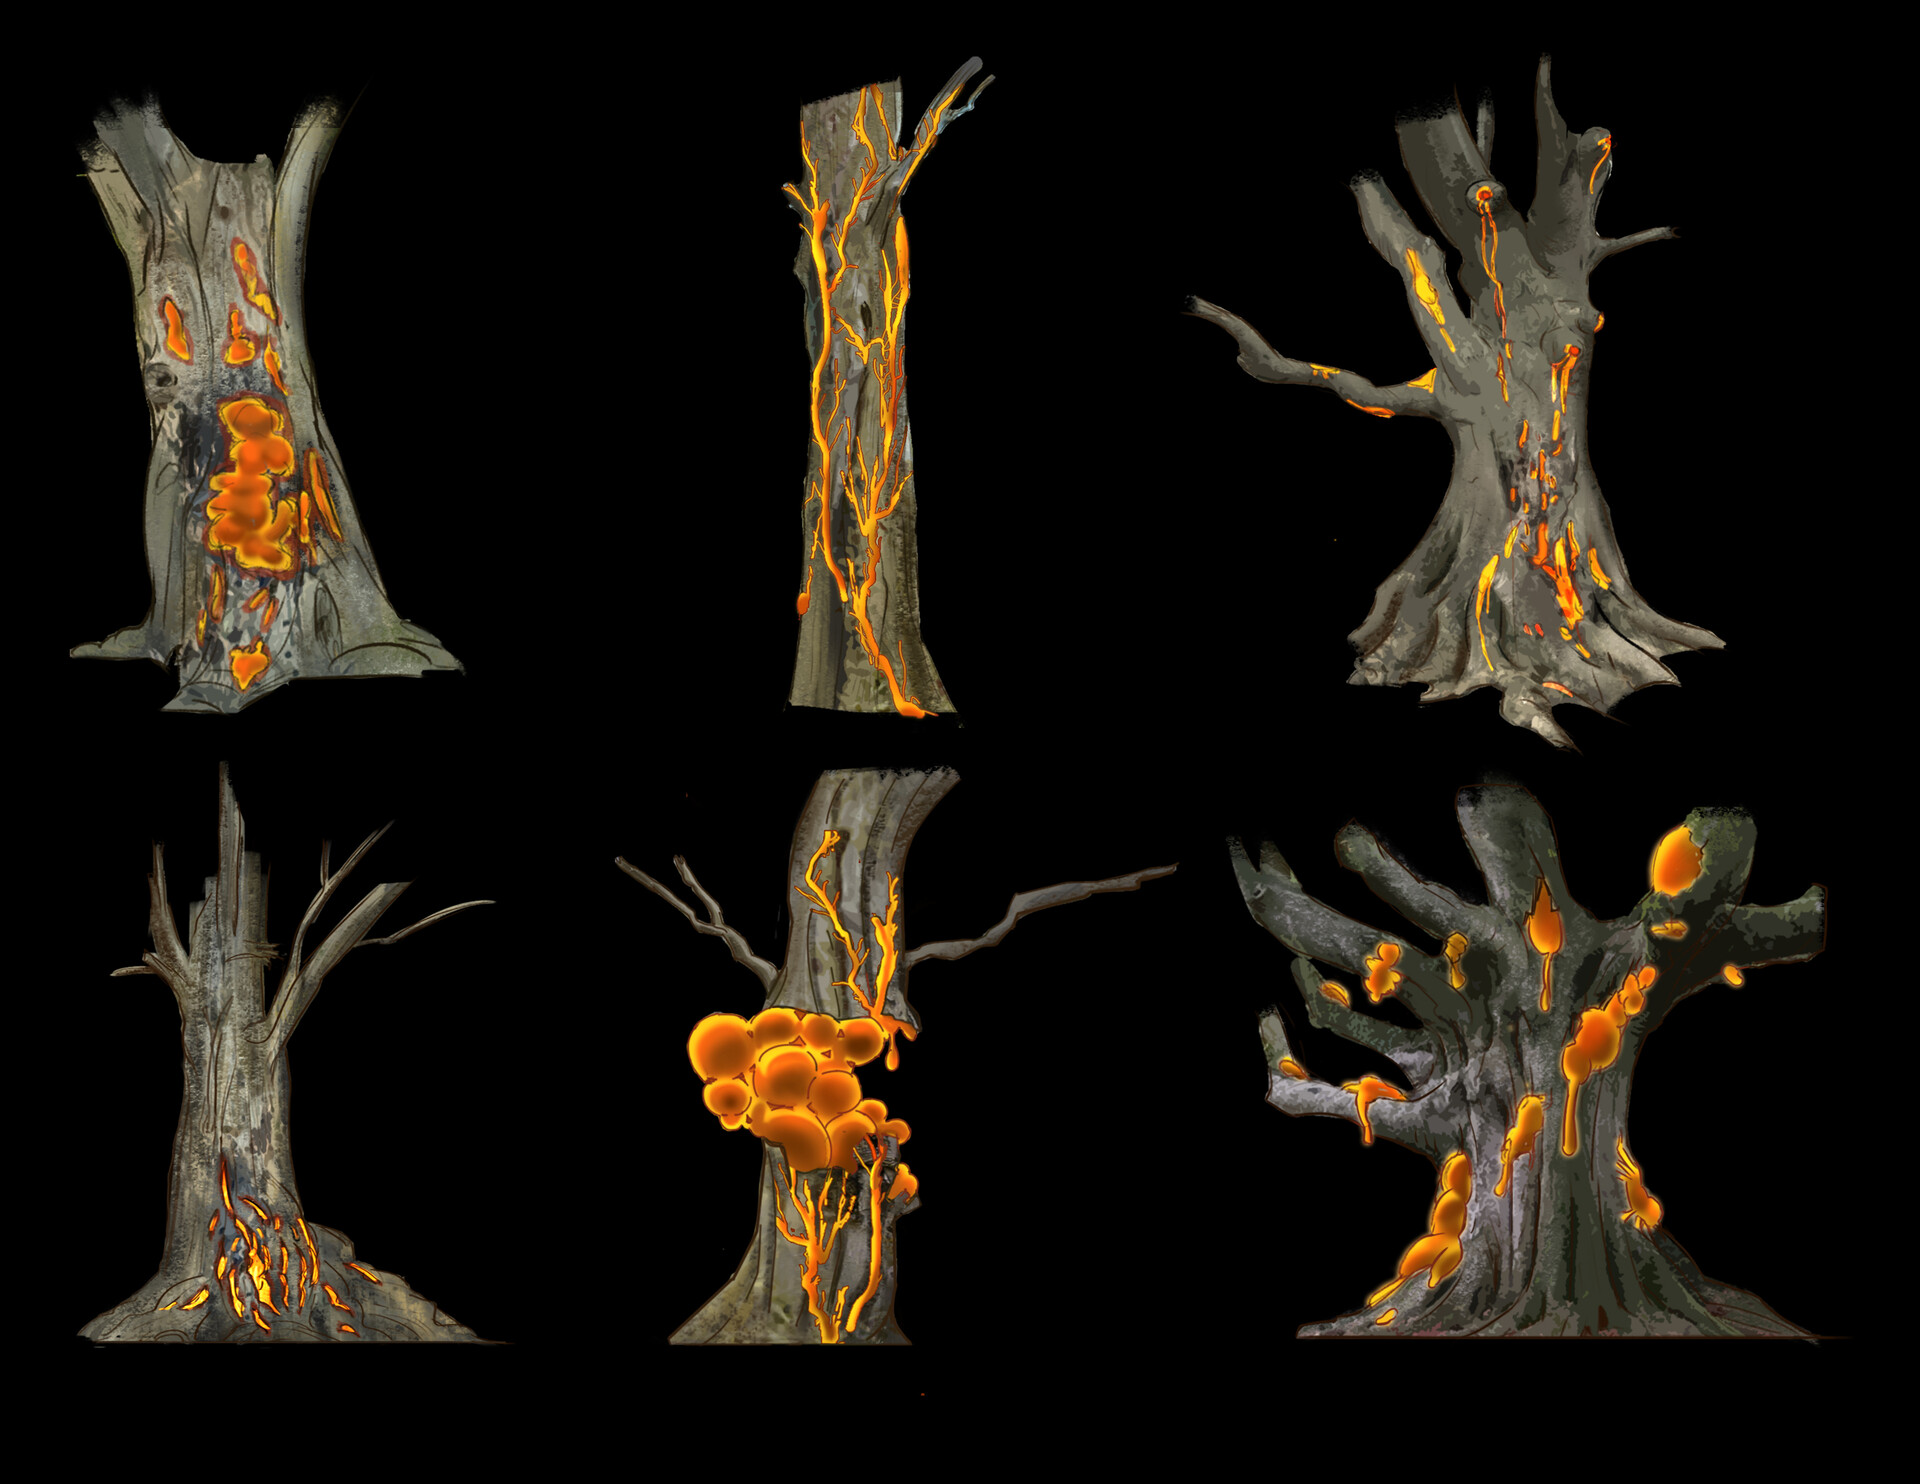 Early ideas of what a rendered version of the blight would look like, variations on how the mana blight disease could effect the tree.